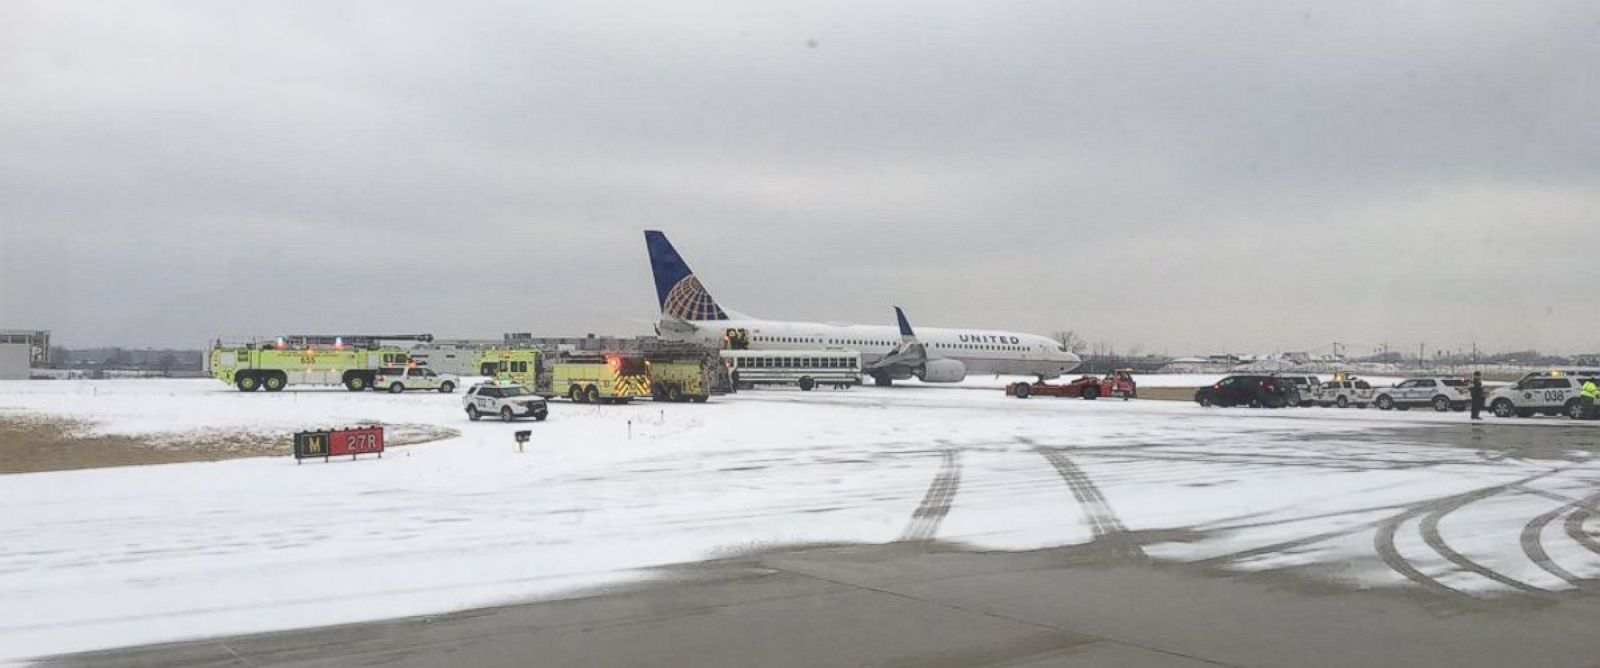 PHOTO: A United Airlines plane slid off the runway at Chicago OHare International Airport on Jan. 16, 2016.